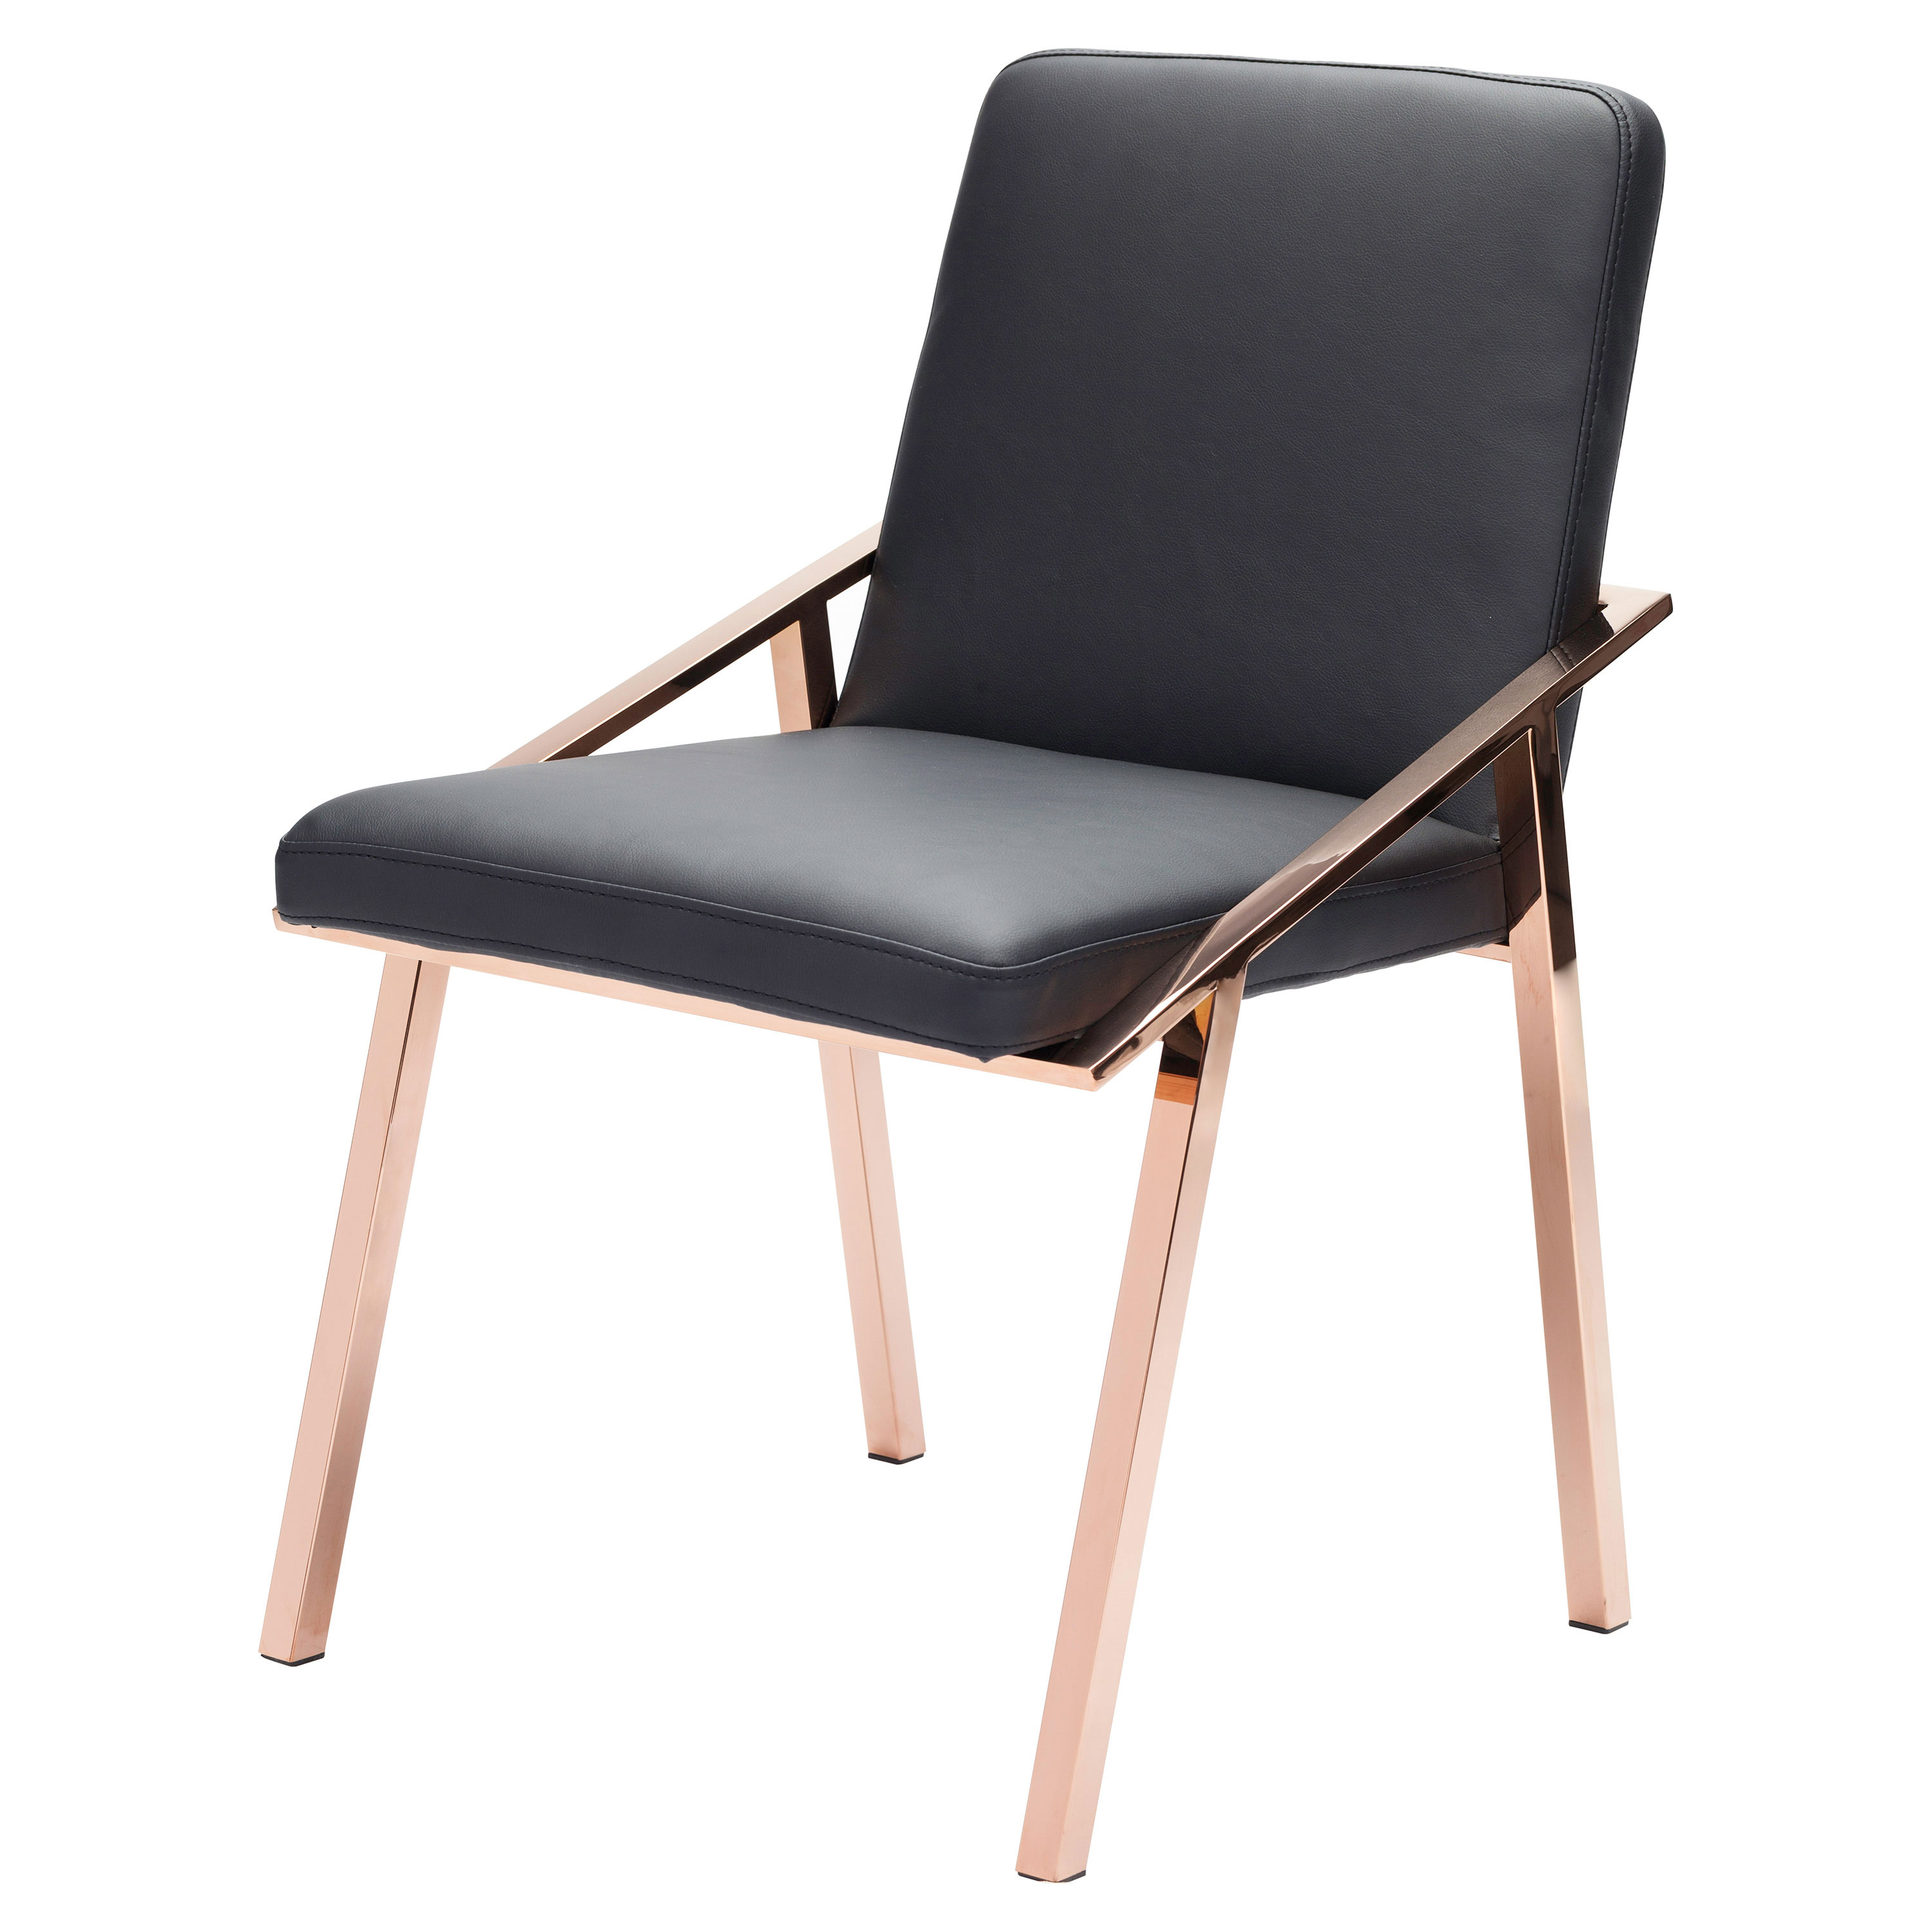 Zoey Modern Black Rose Gold Arm Dining Chair